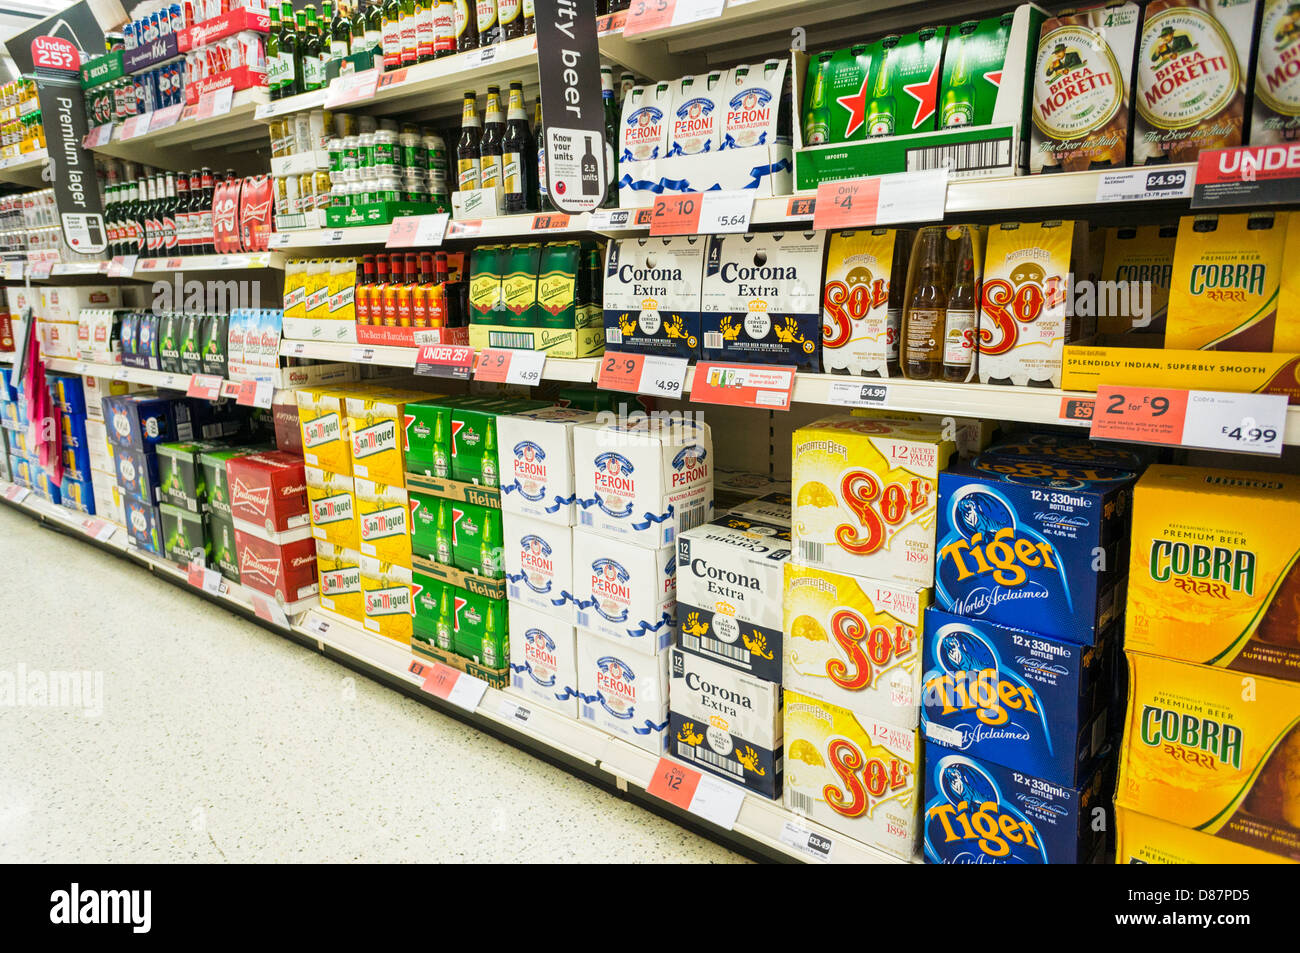 Lager / beer aisle in a Sainsburys supermarket, England, UK - Stock Image